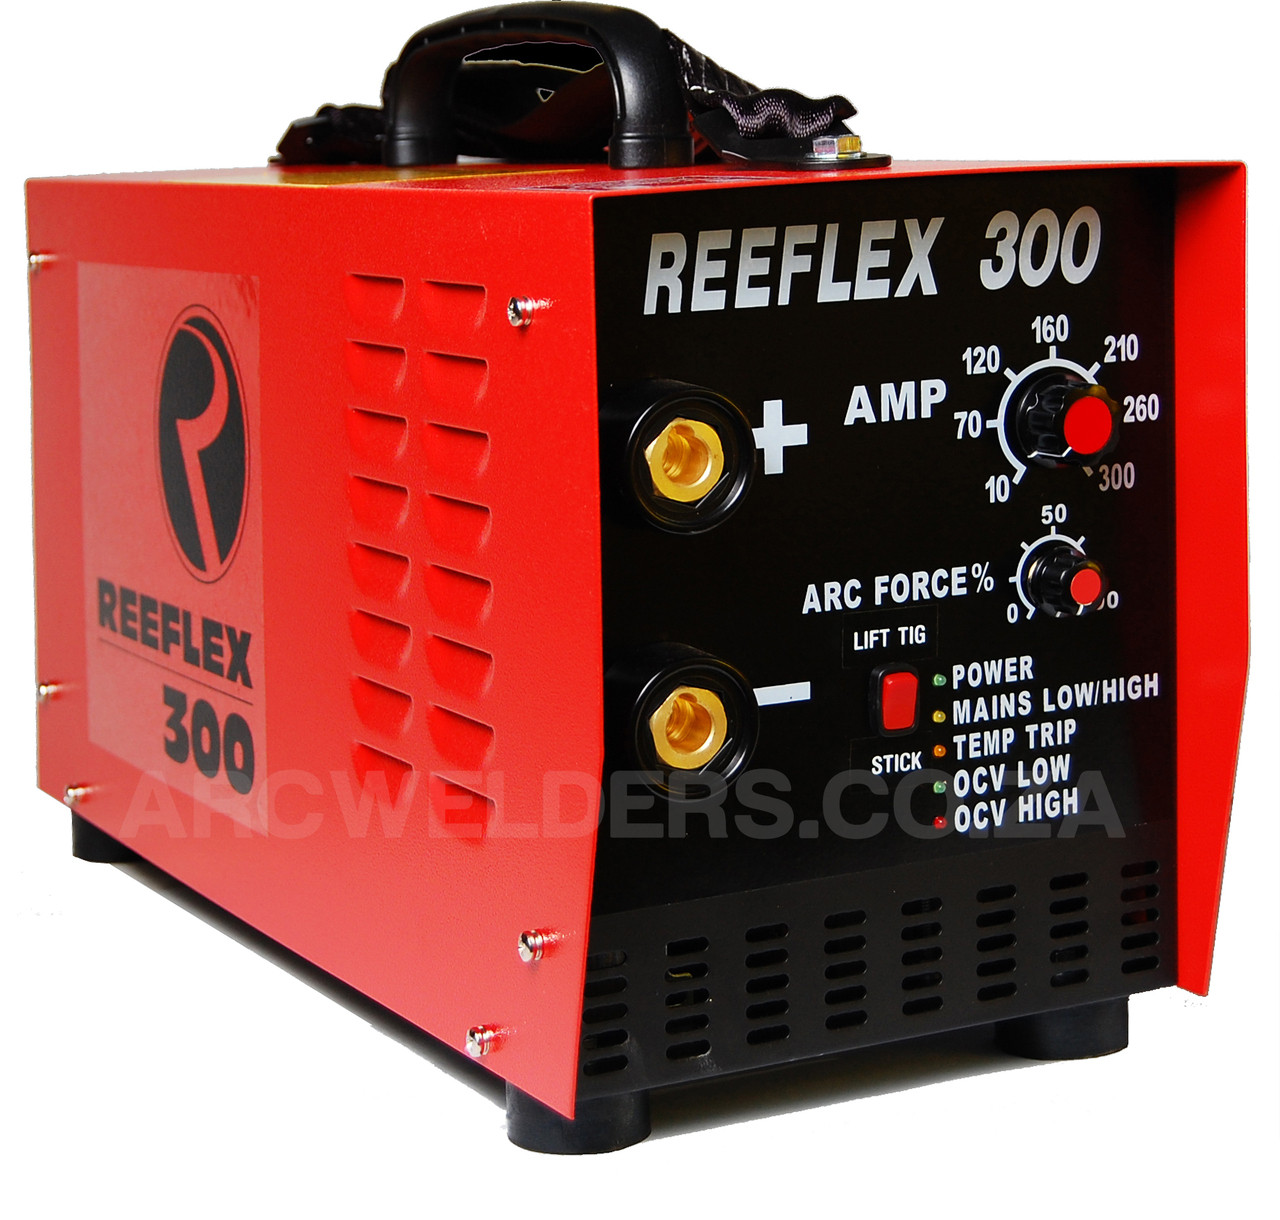 Reeflex 300amp Arc Inverter Welder 100% Duty Cycle